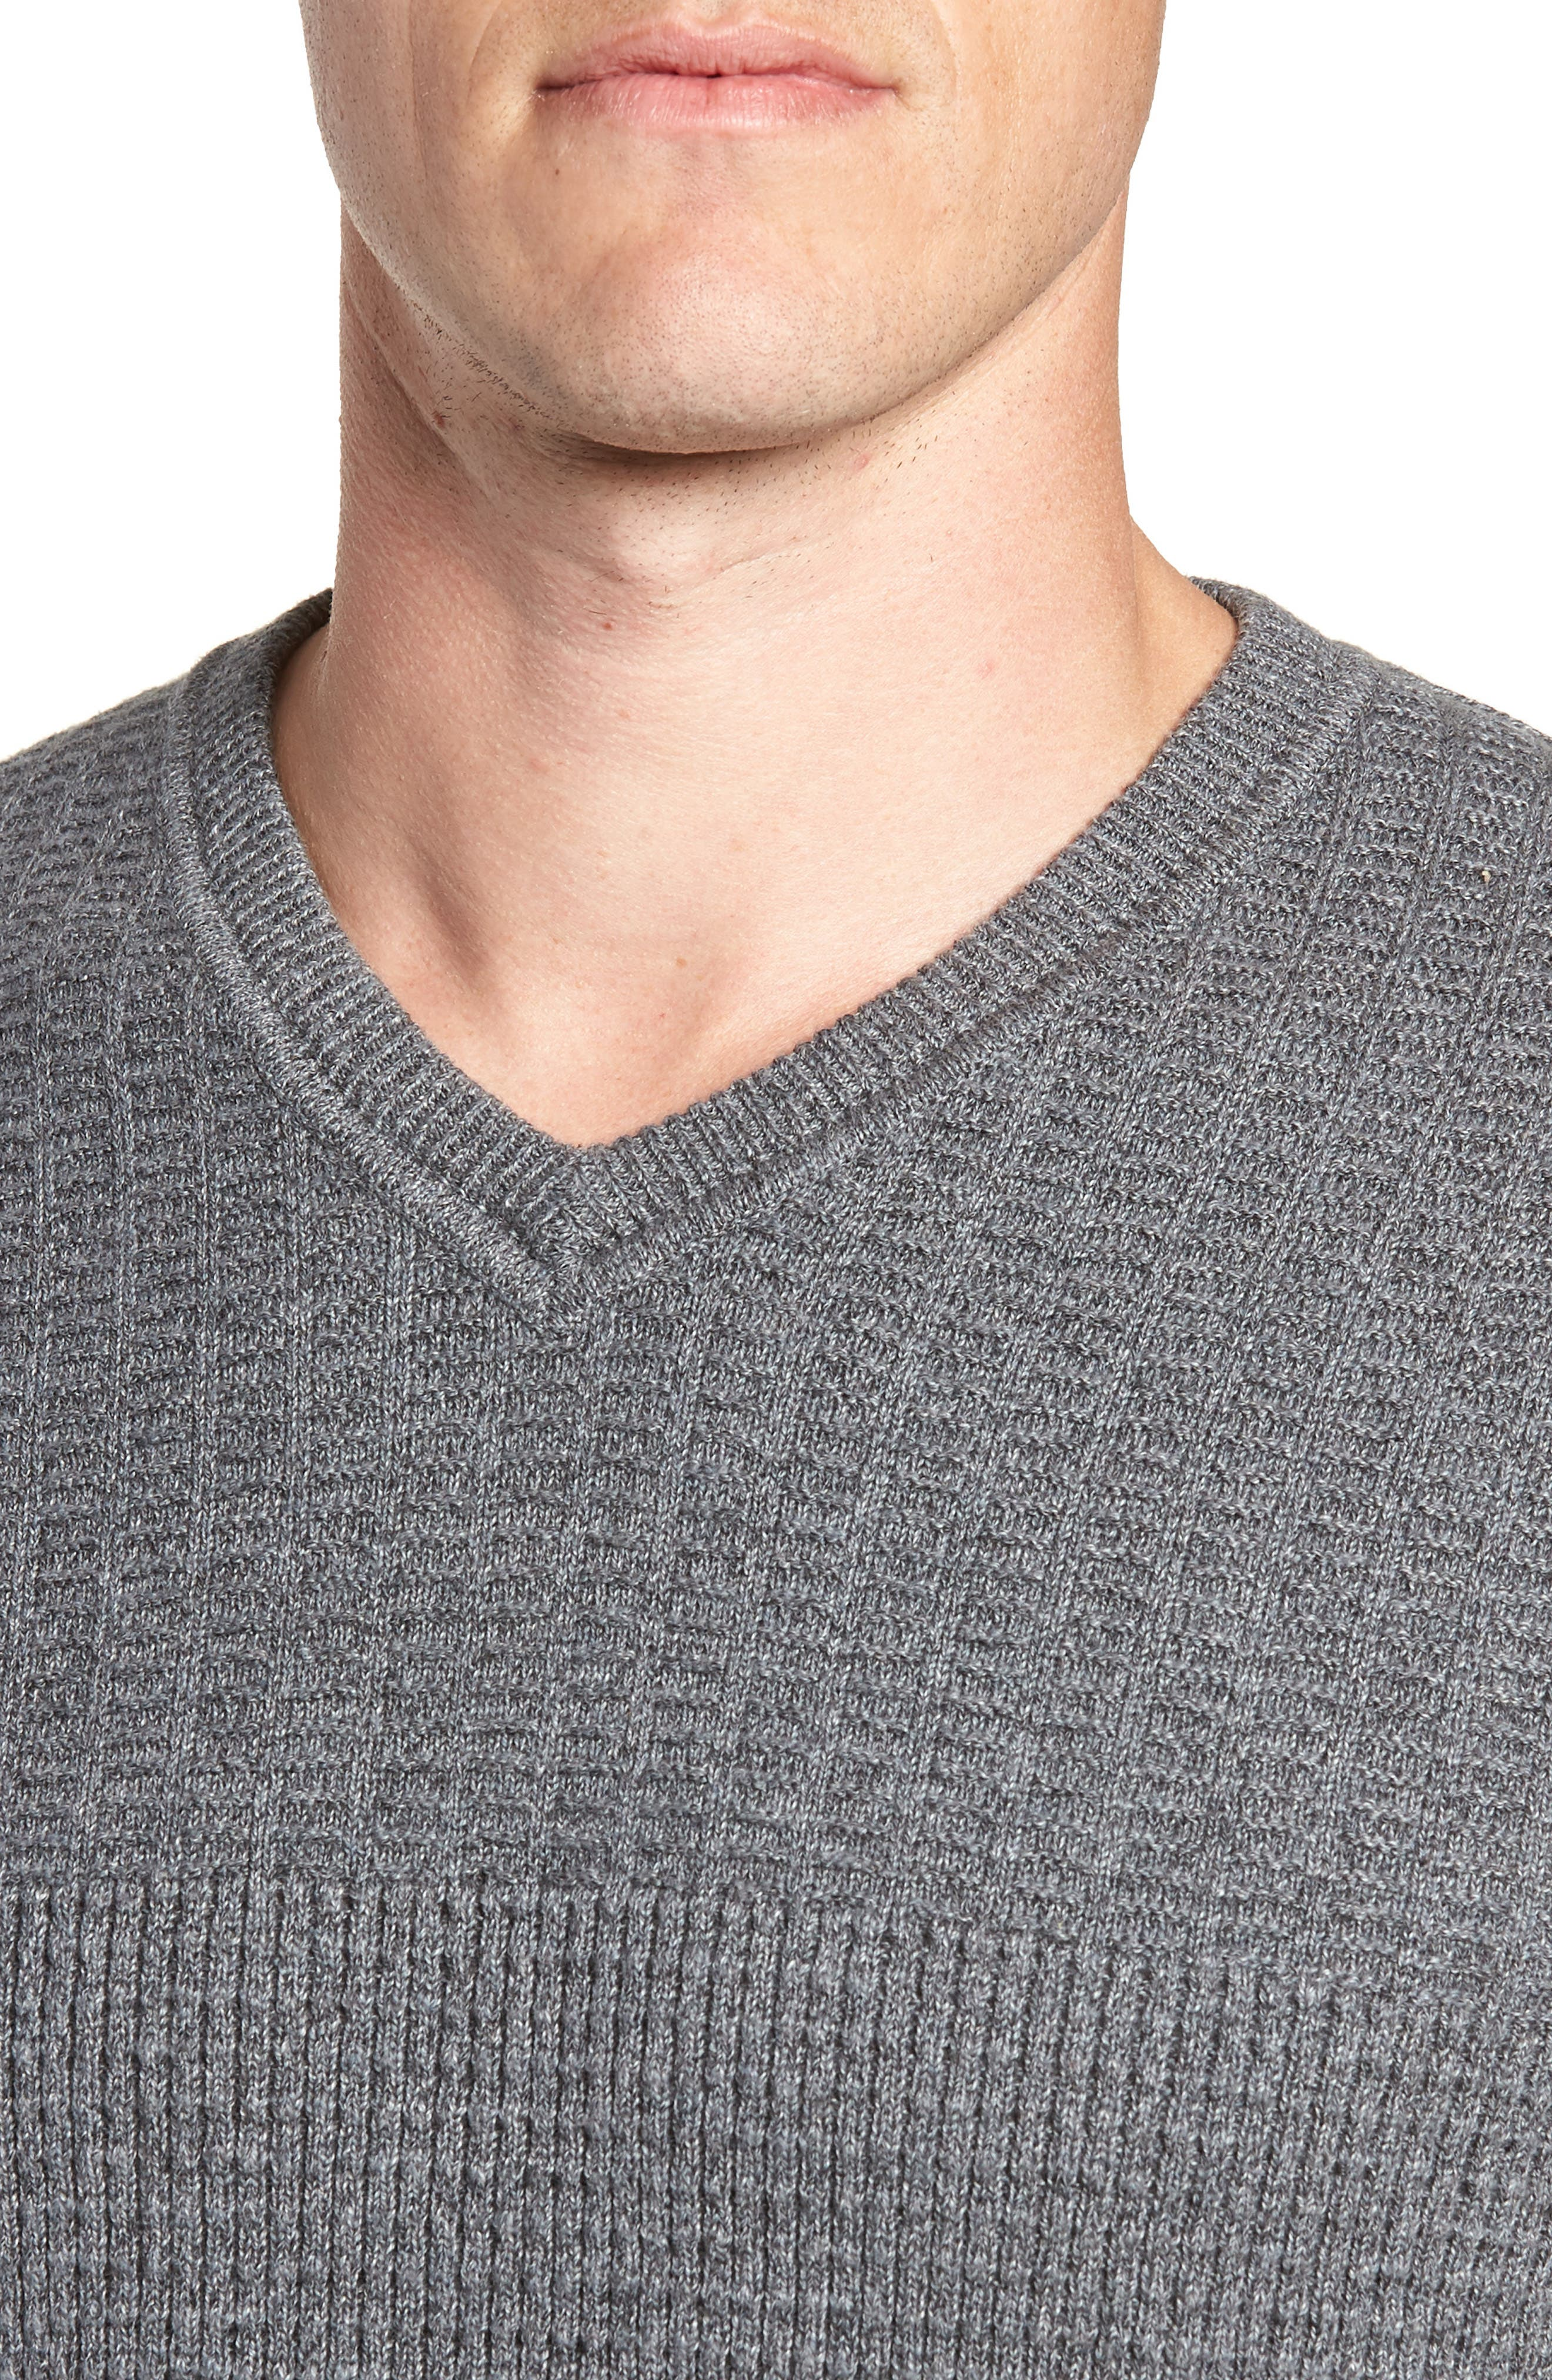 TOMMY BAHAMA, Isidro V-Neck Regular Fit Sweater, Alternate thumbnail 4, color, CAVE